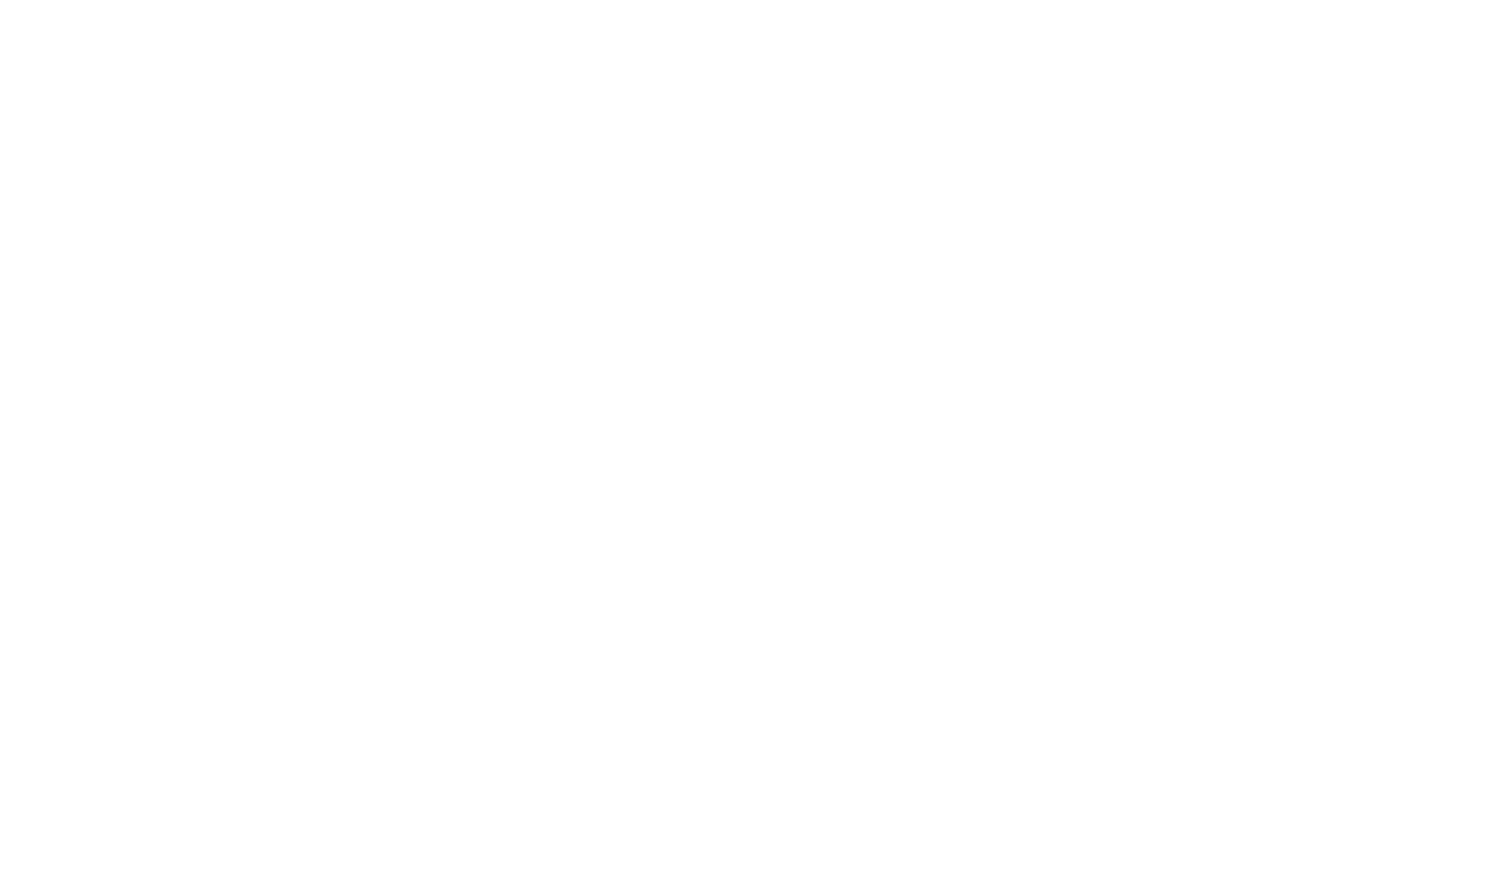 NH Bacon & Beer Festival